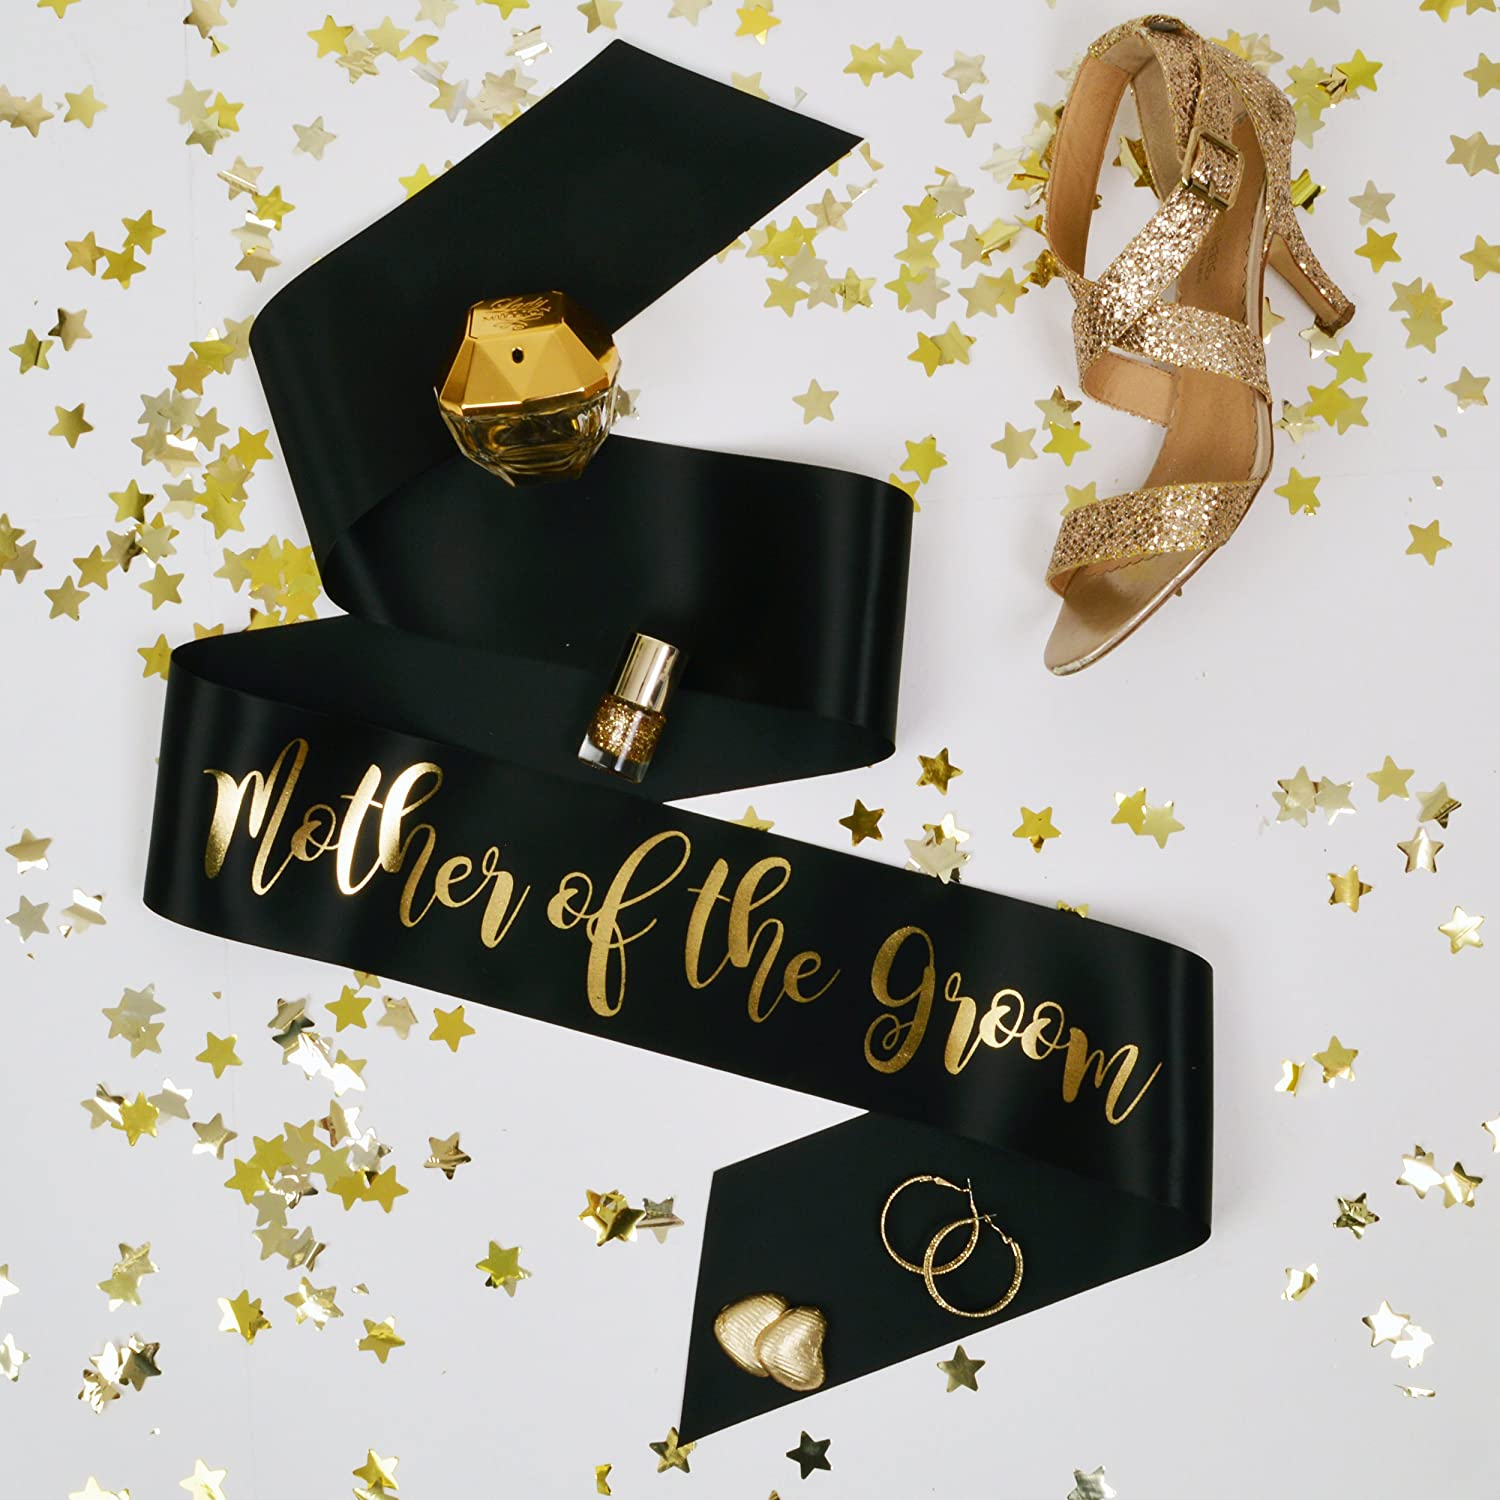 All Tied Up UK Ltd - Mother of the Groom Hen Party Sash - Black and Gold Classy Hen Party Sashes - Team Bride Hen Party Range